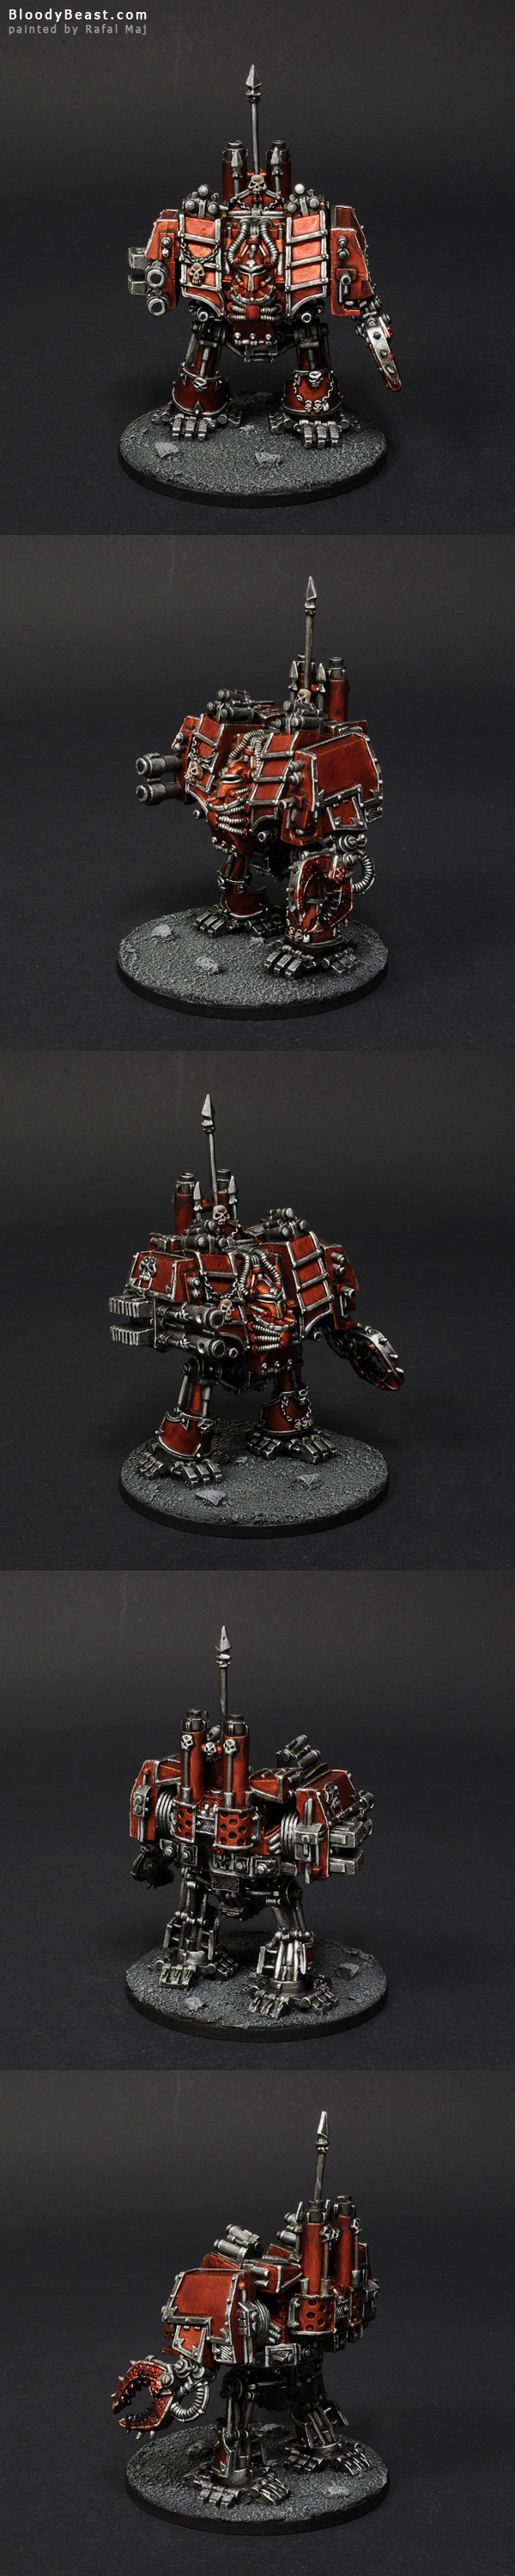 Skulltakers Chaos Space Marines Dreadnought painted by Rafal Maj (BloodyBeast.com)